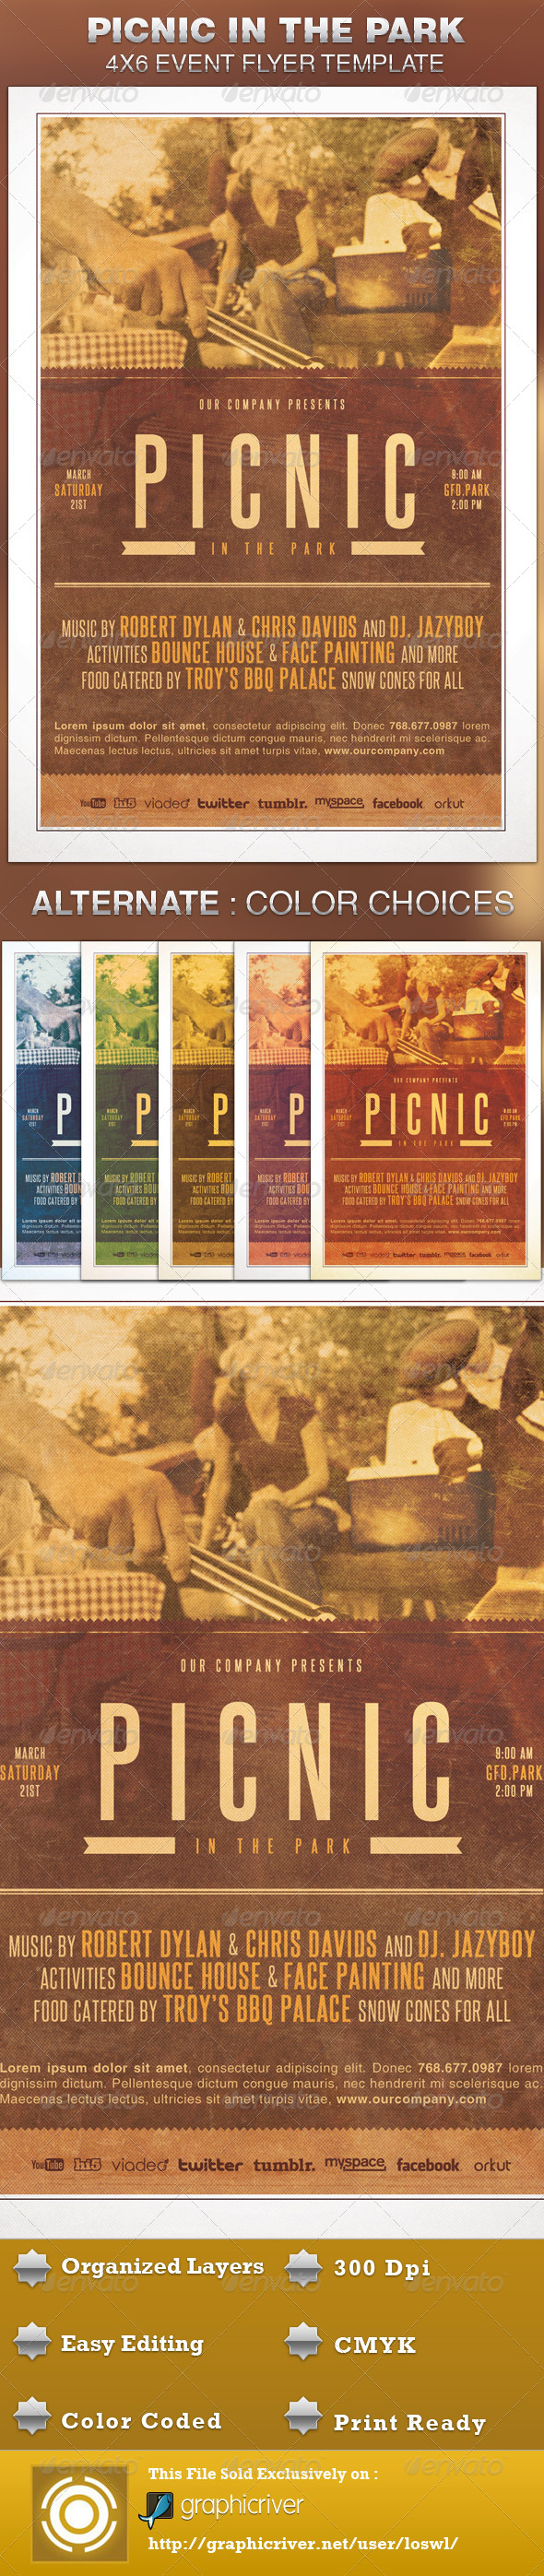 Picnic in the Park Event Flyer Template - Events Flyers